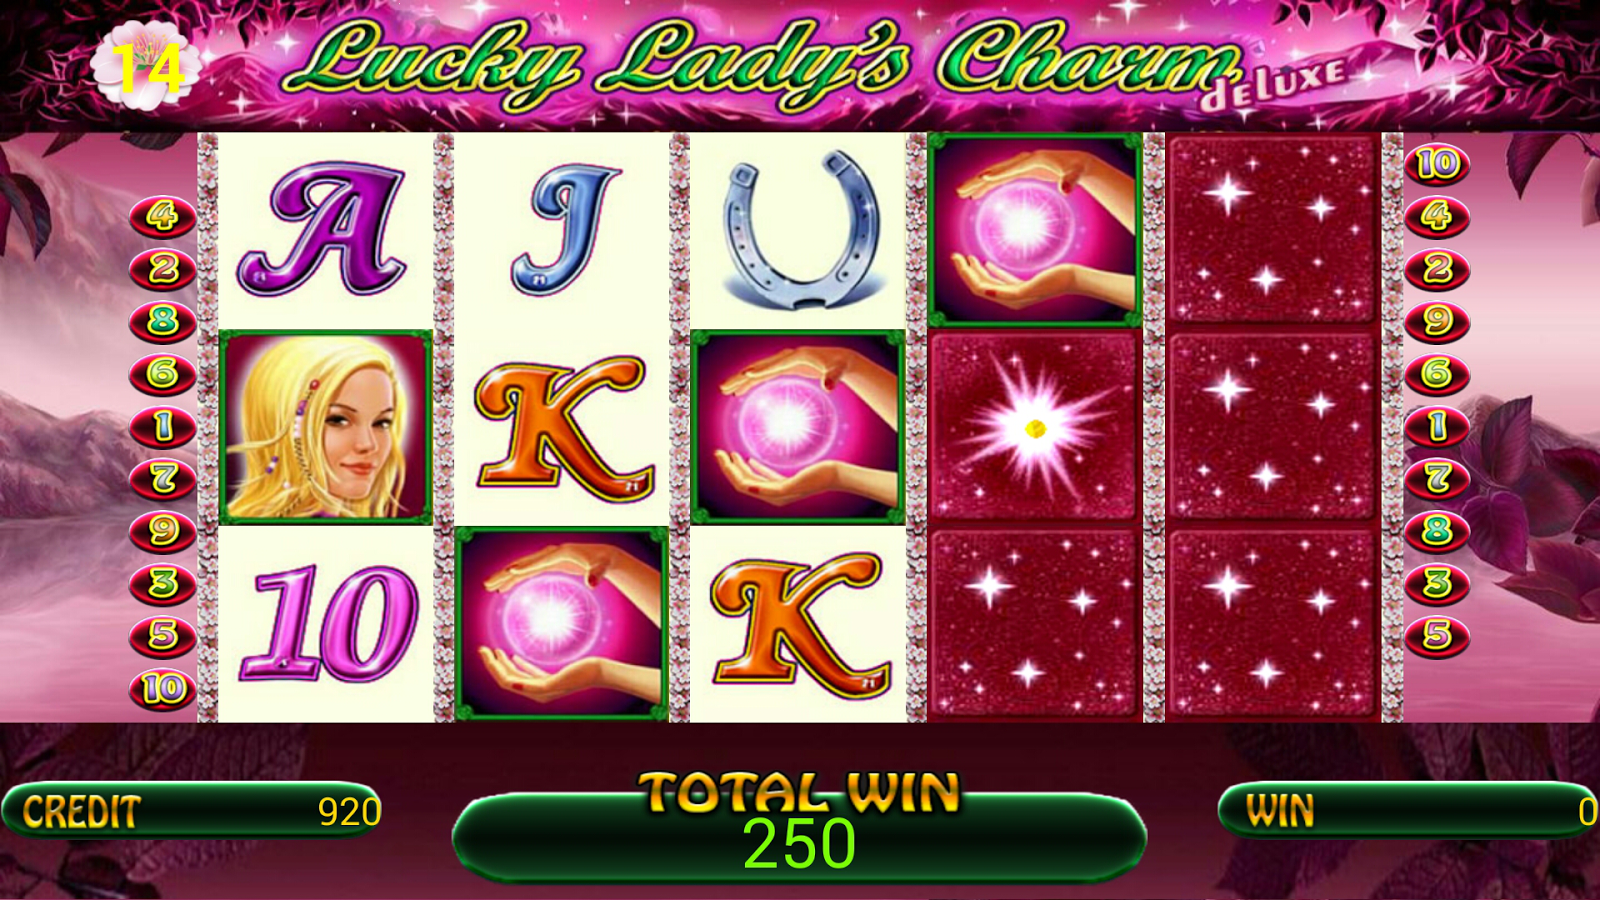 free casino games lucky lady charm